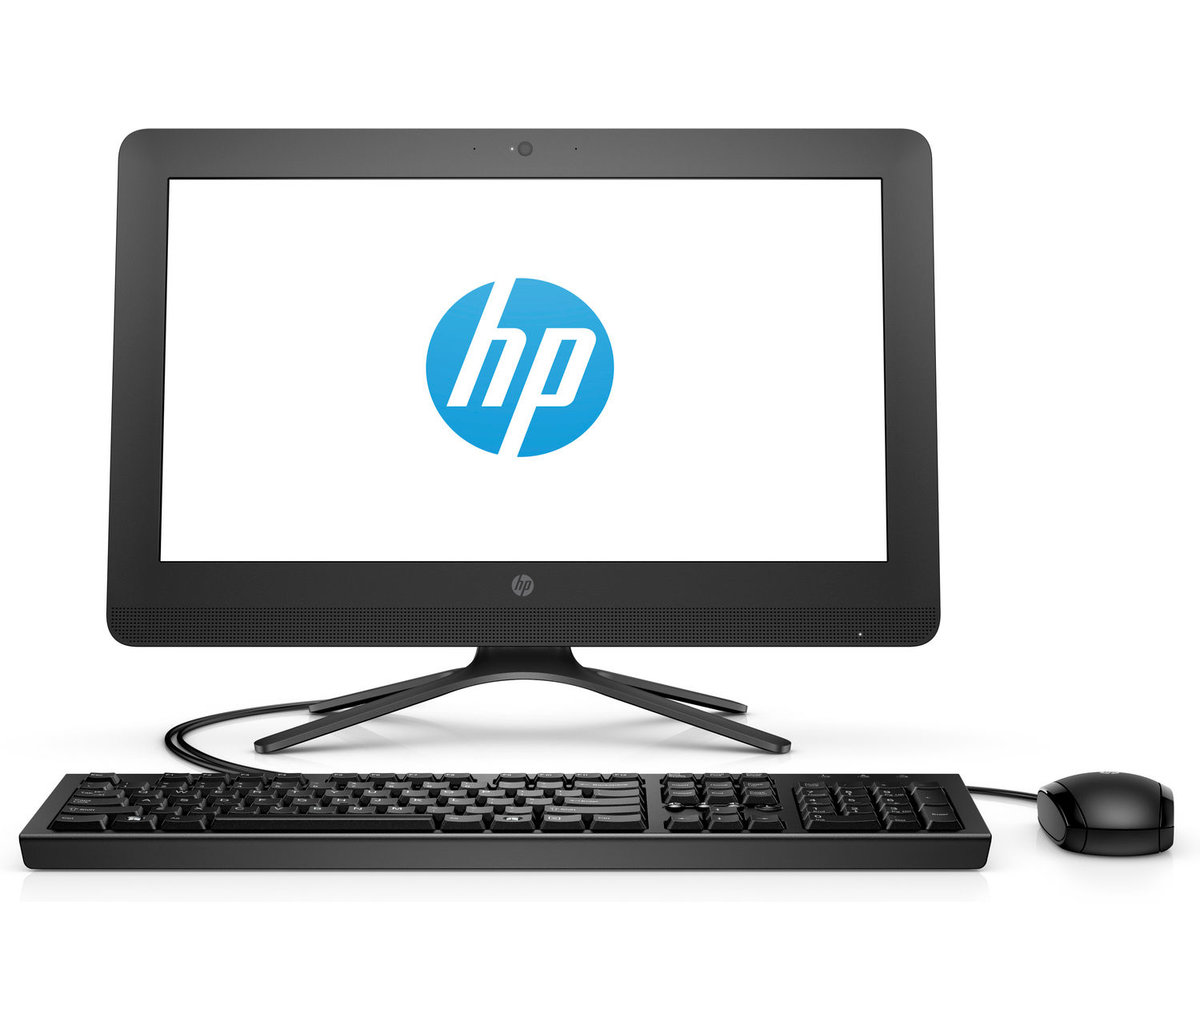 HP 20-c417in AIO 2018 19.5-inch All-in-One Desktop (Celeron J4005/4GB/1TB/Windows 10/Integrated Graphics), Black